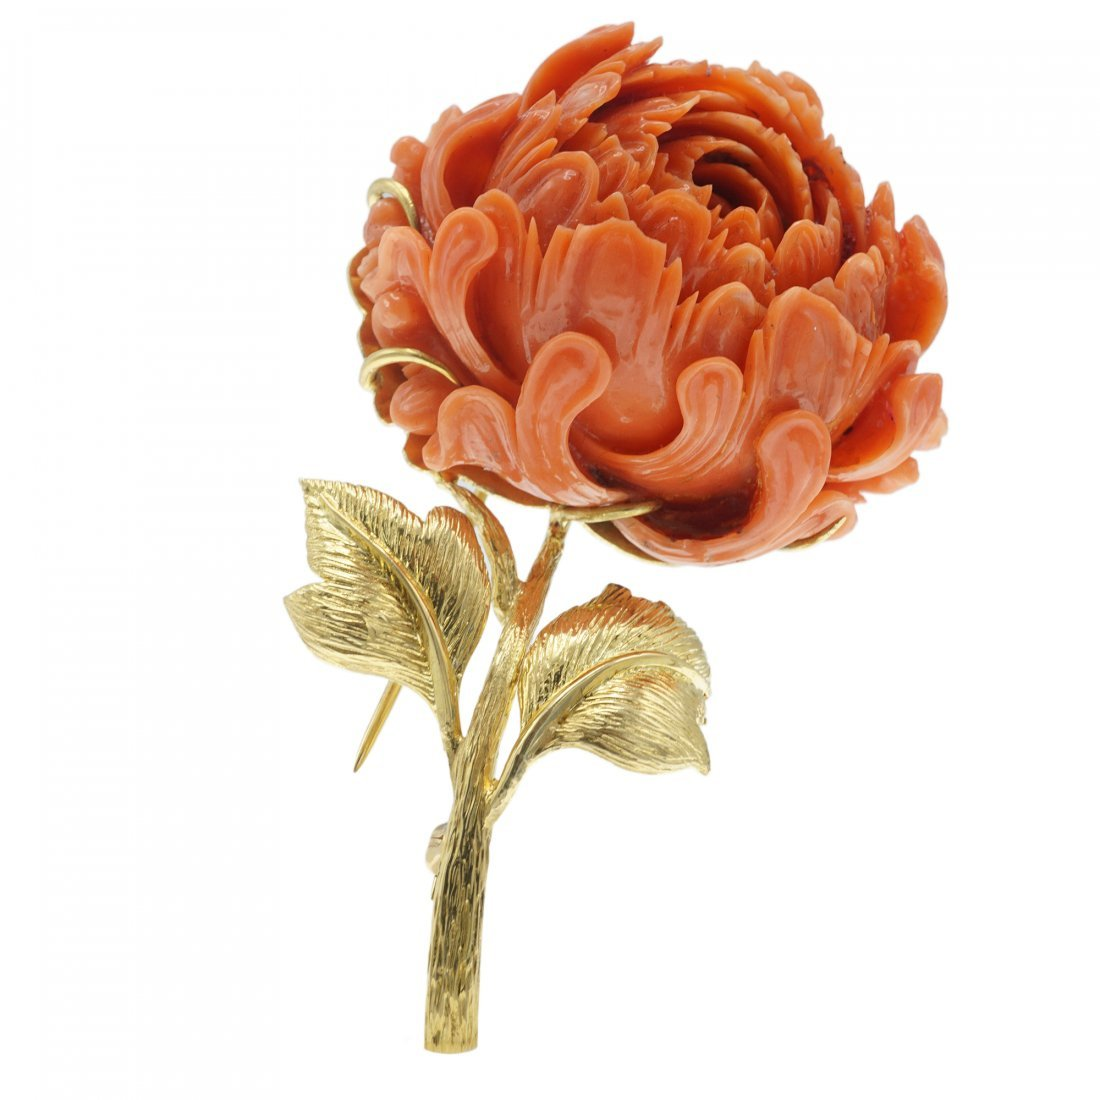 DAVID WEBB CORAL FLOWER 18 KARAT GOLD BROOCH